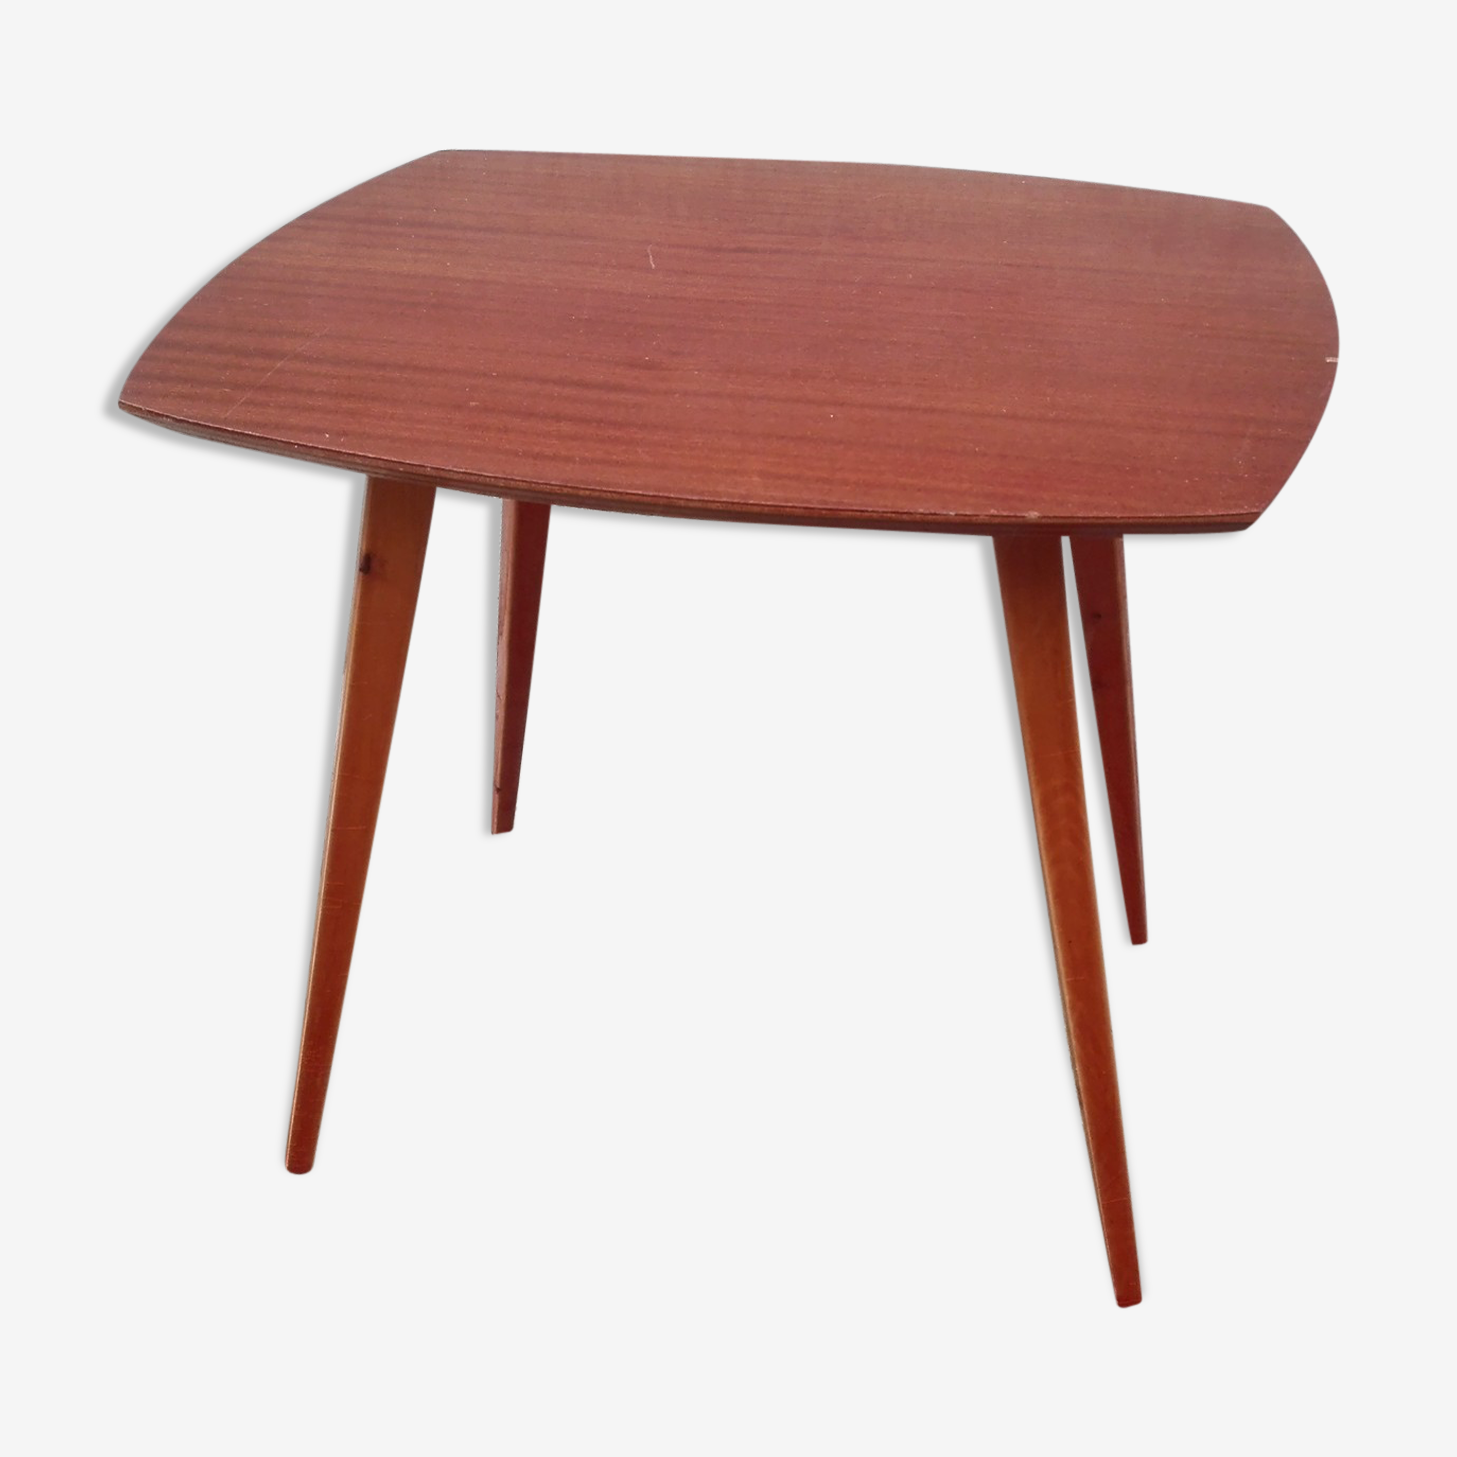 Table basse pieds compas inspiration scandinave